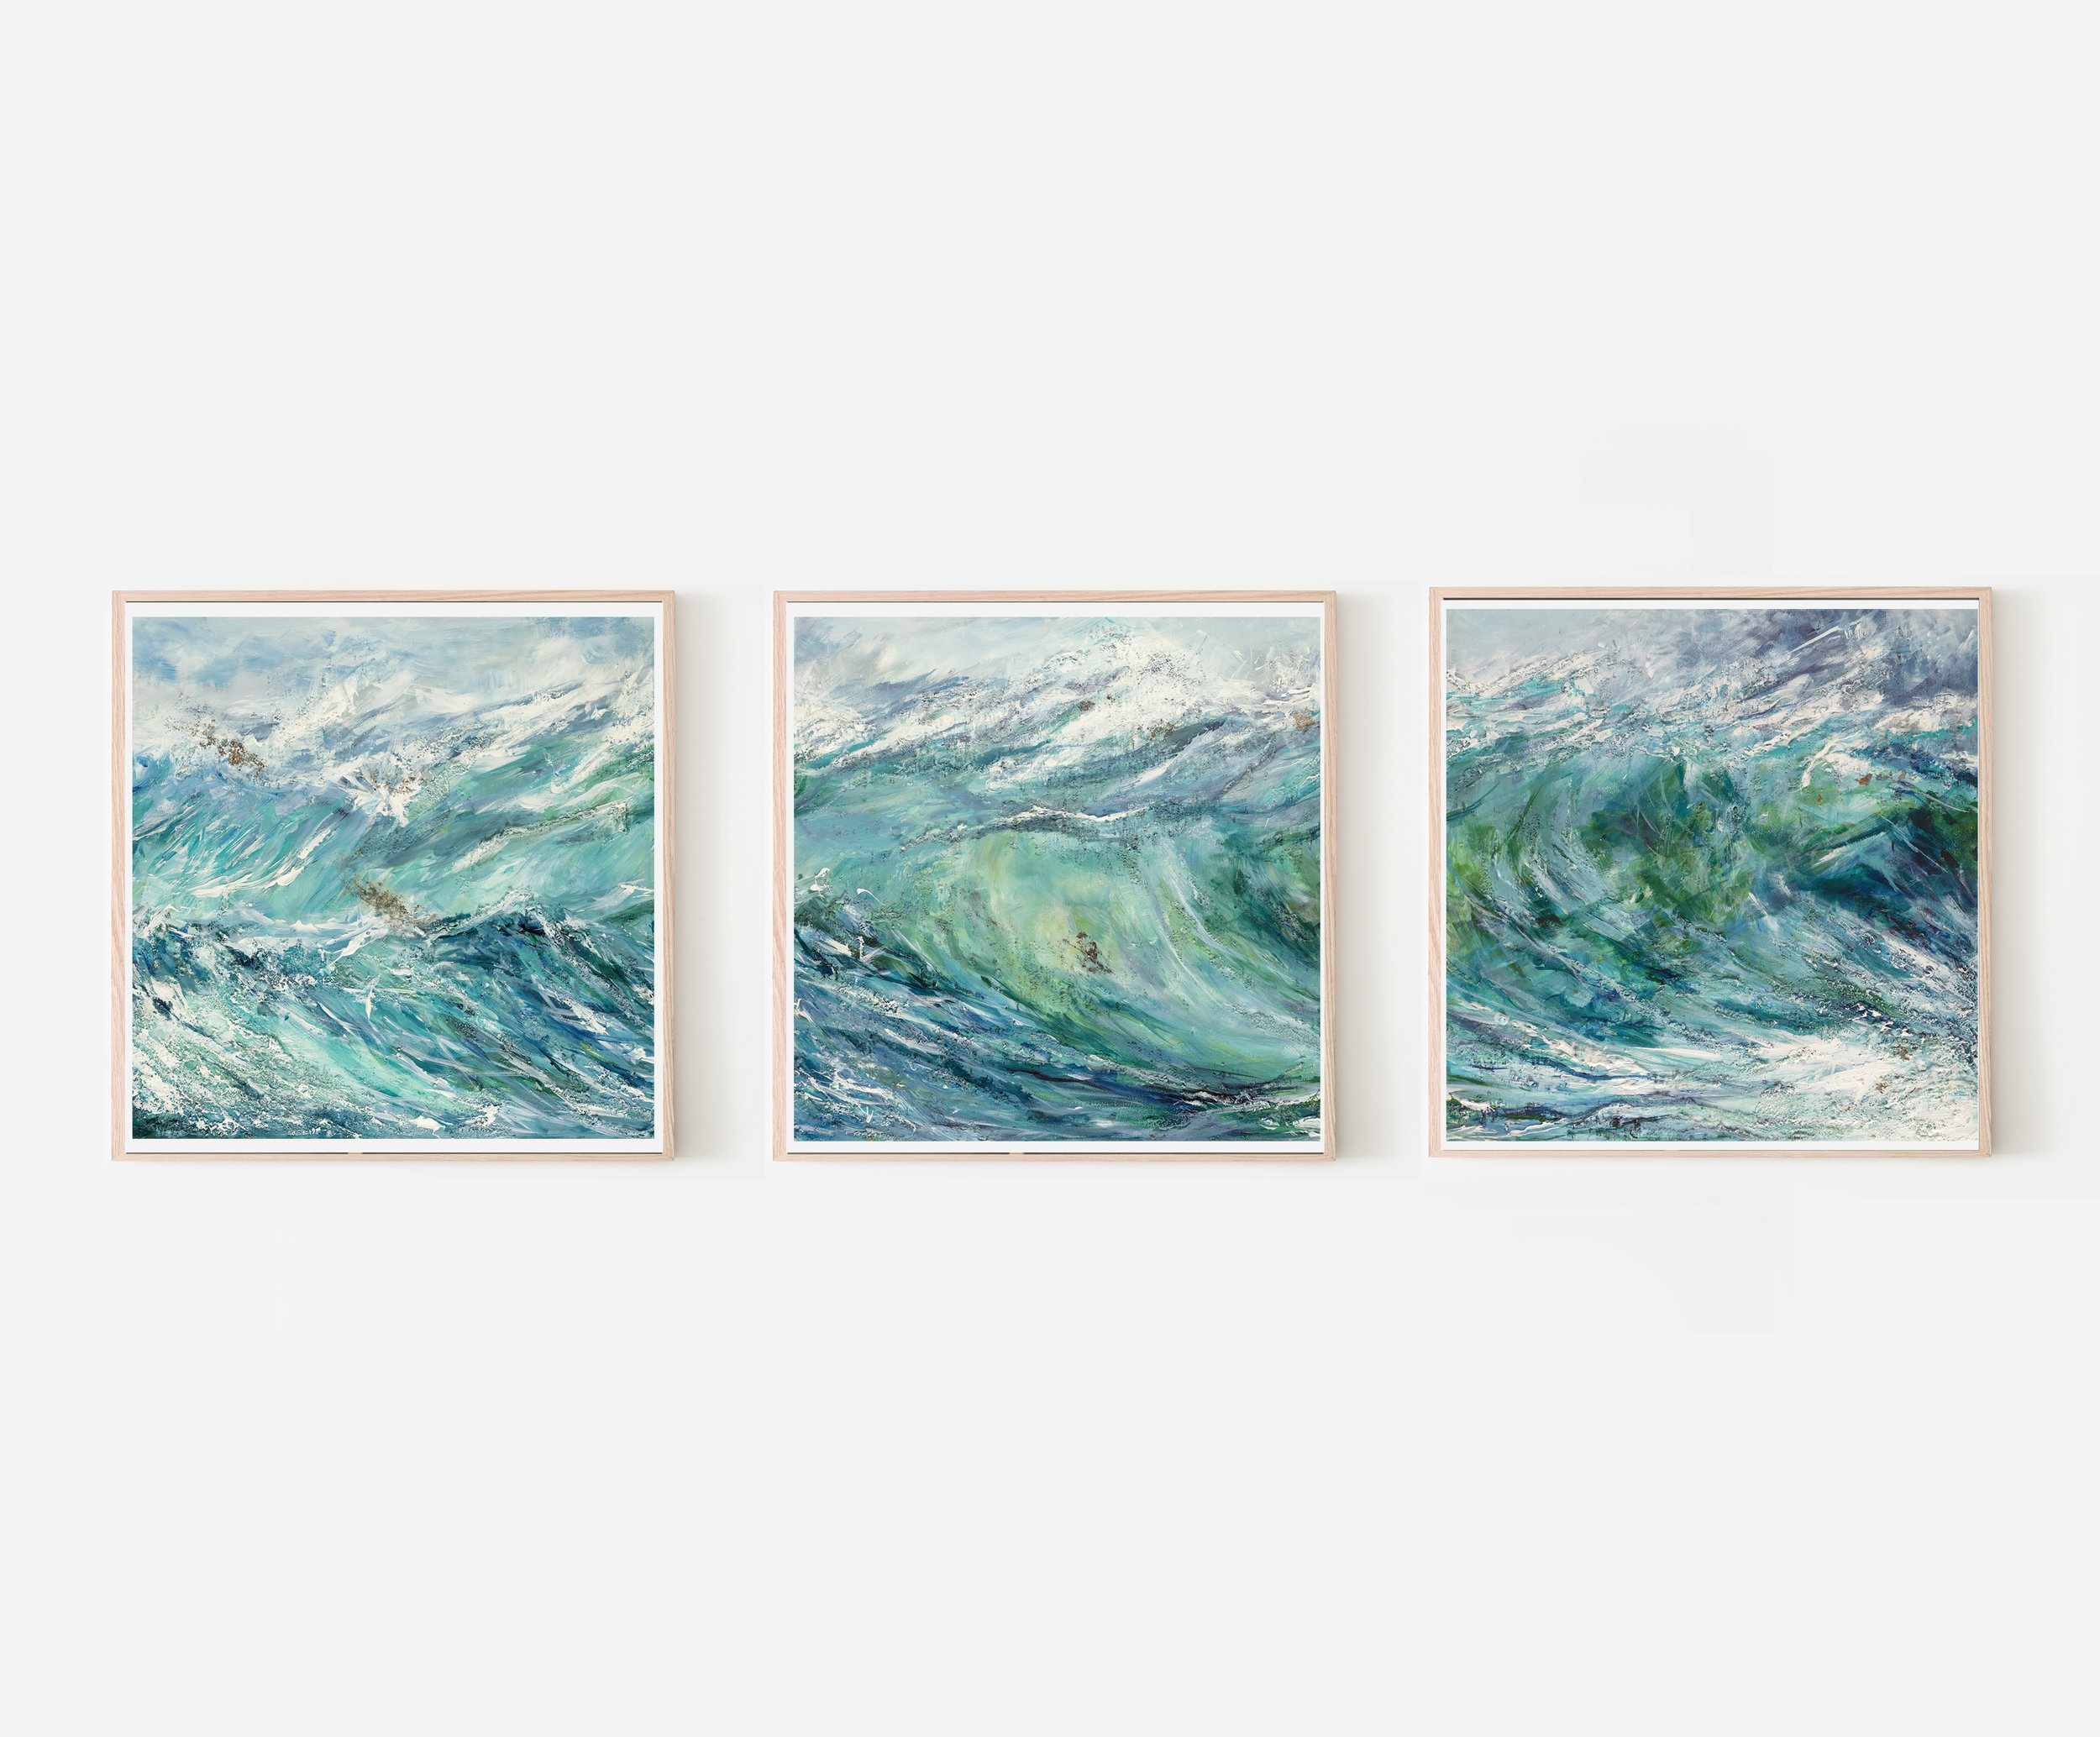 Set of 3 Breaking Wave giclée prints by Charlotte Farrow